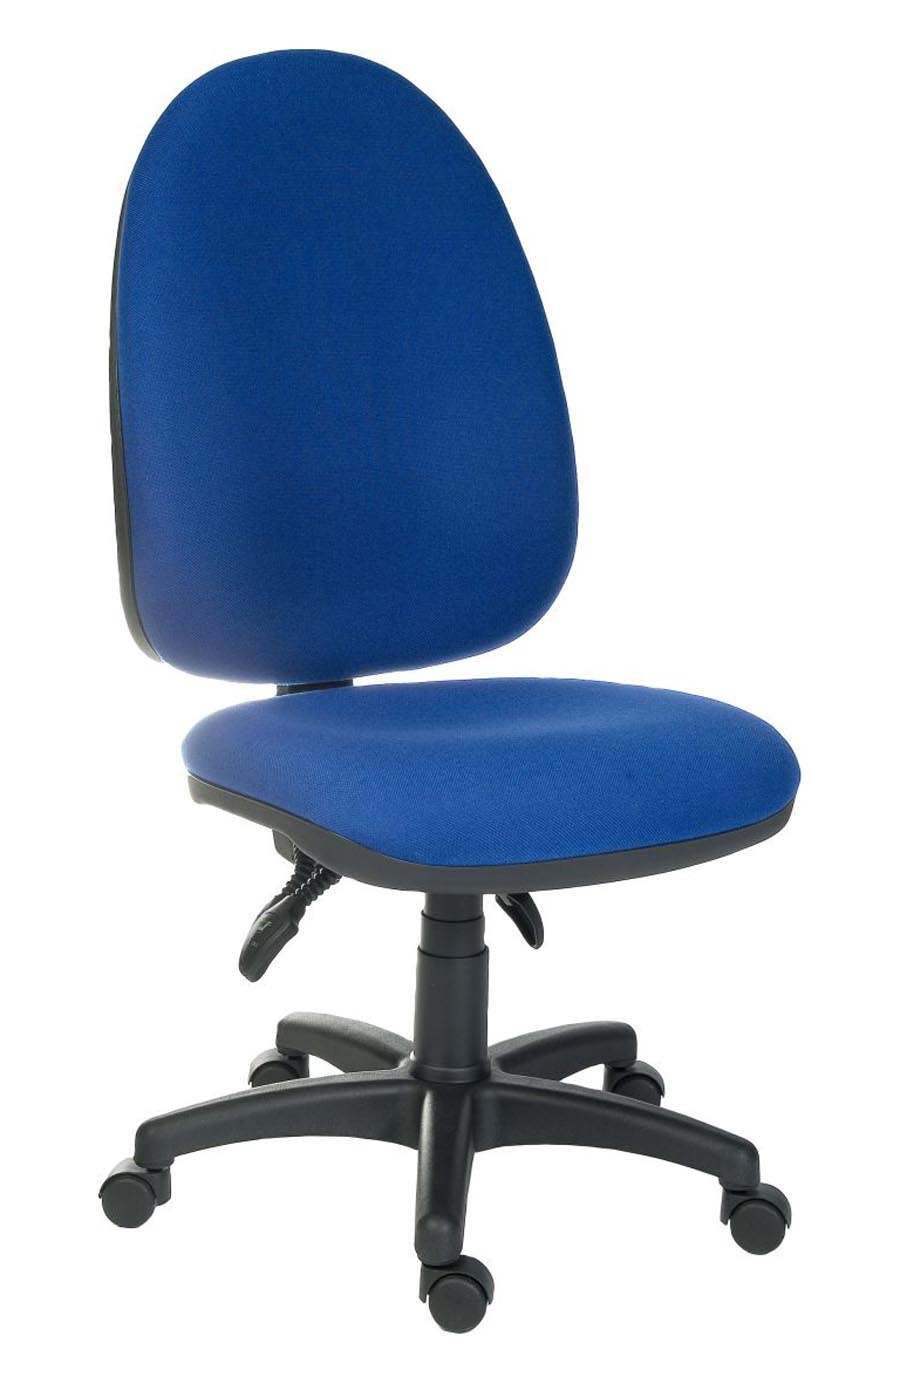 blue office chair bentwood bistro chairs uk officer large asynchronous ergonomic